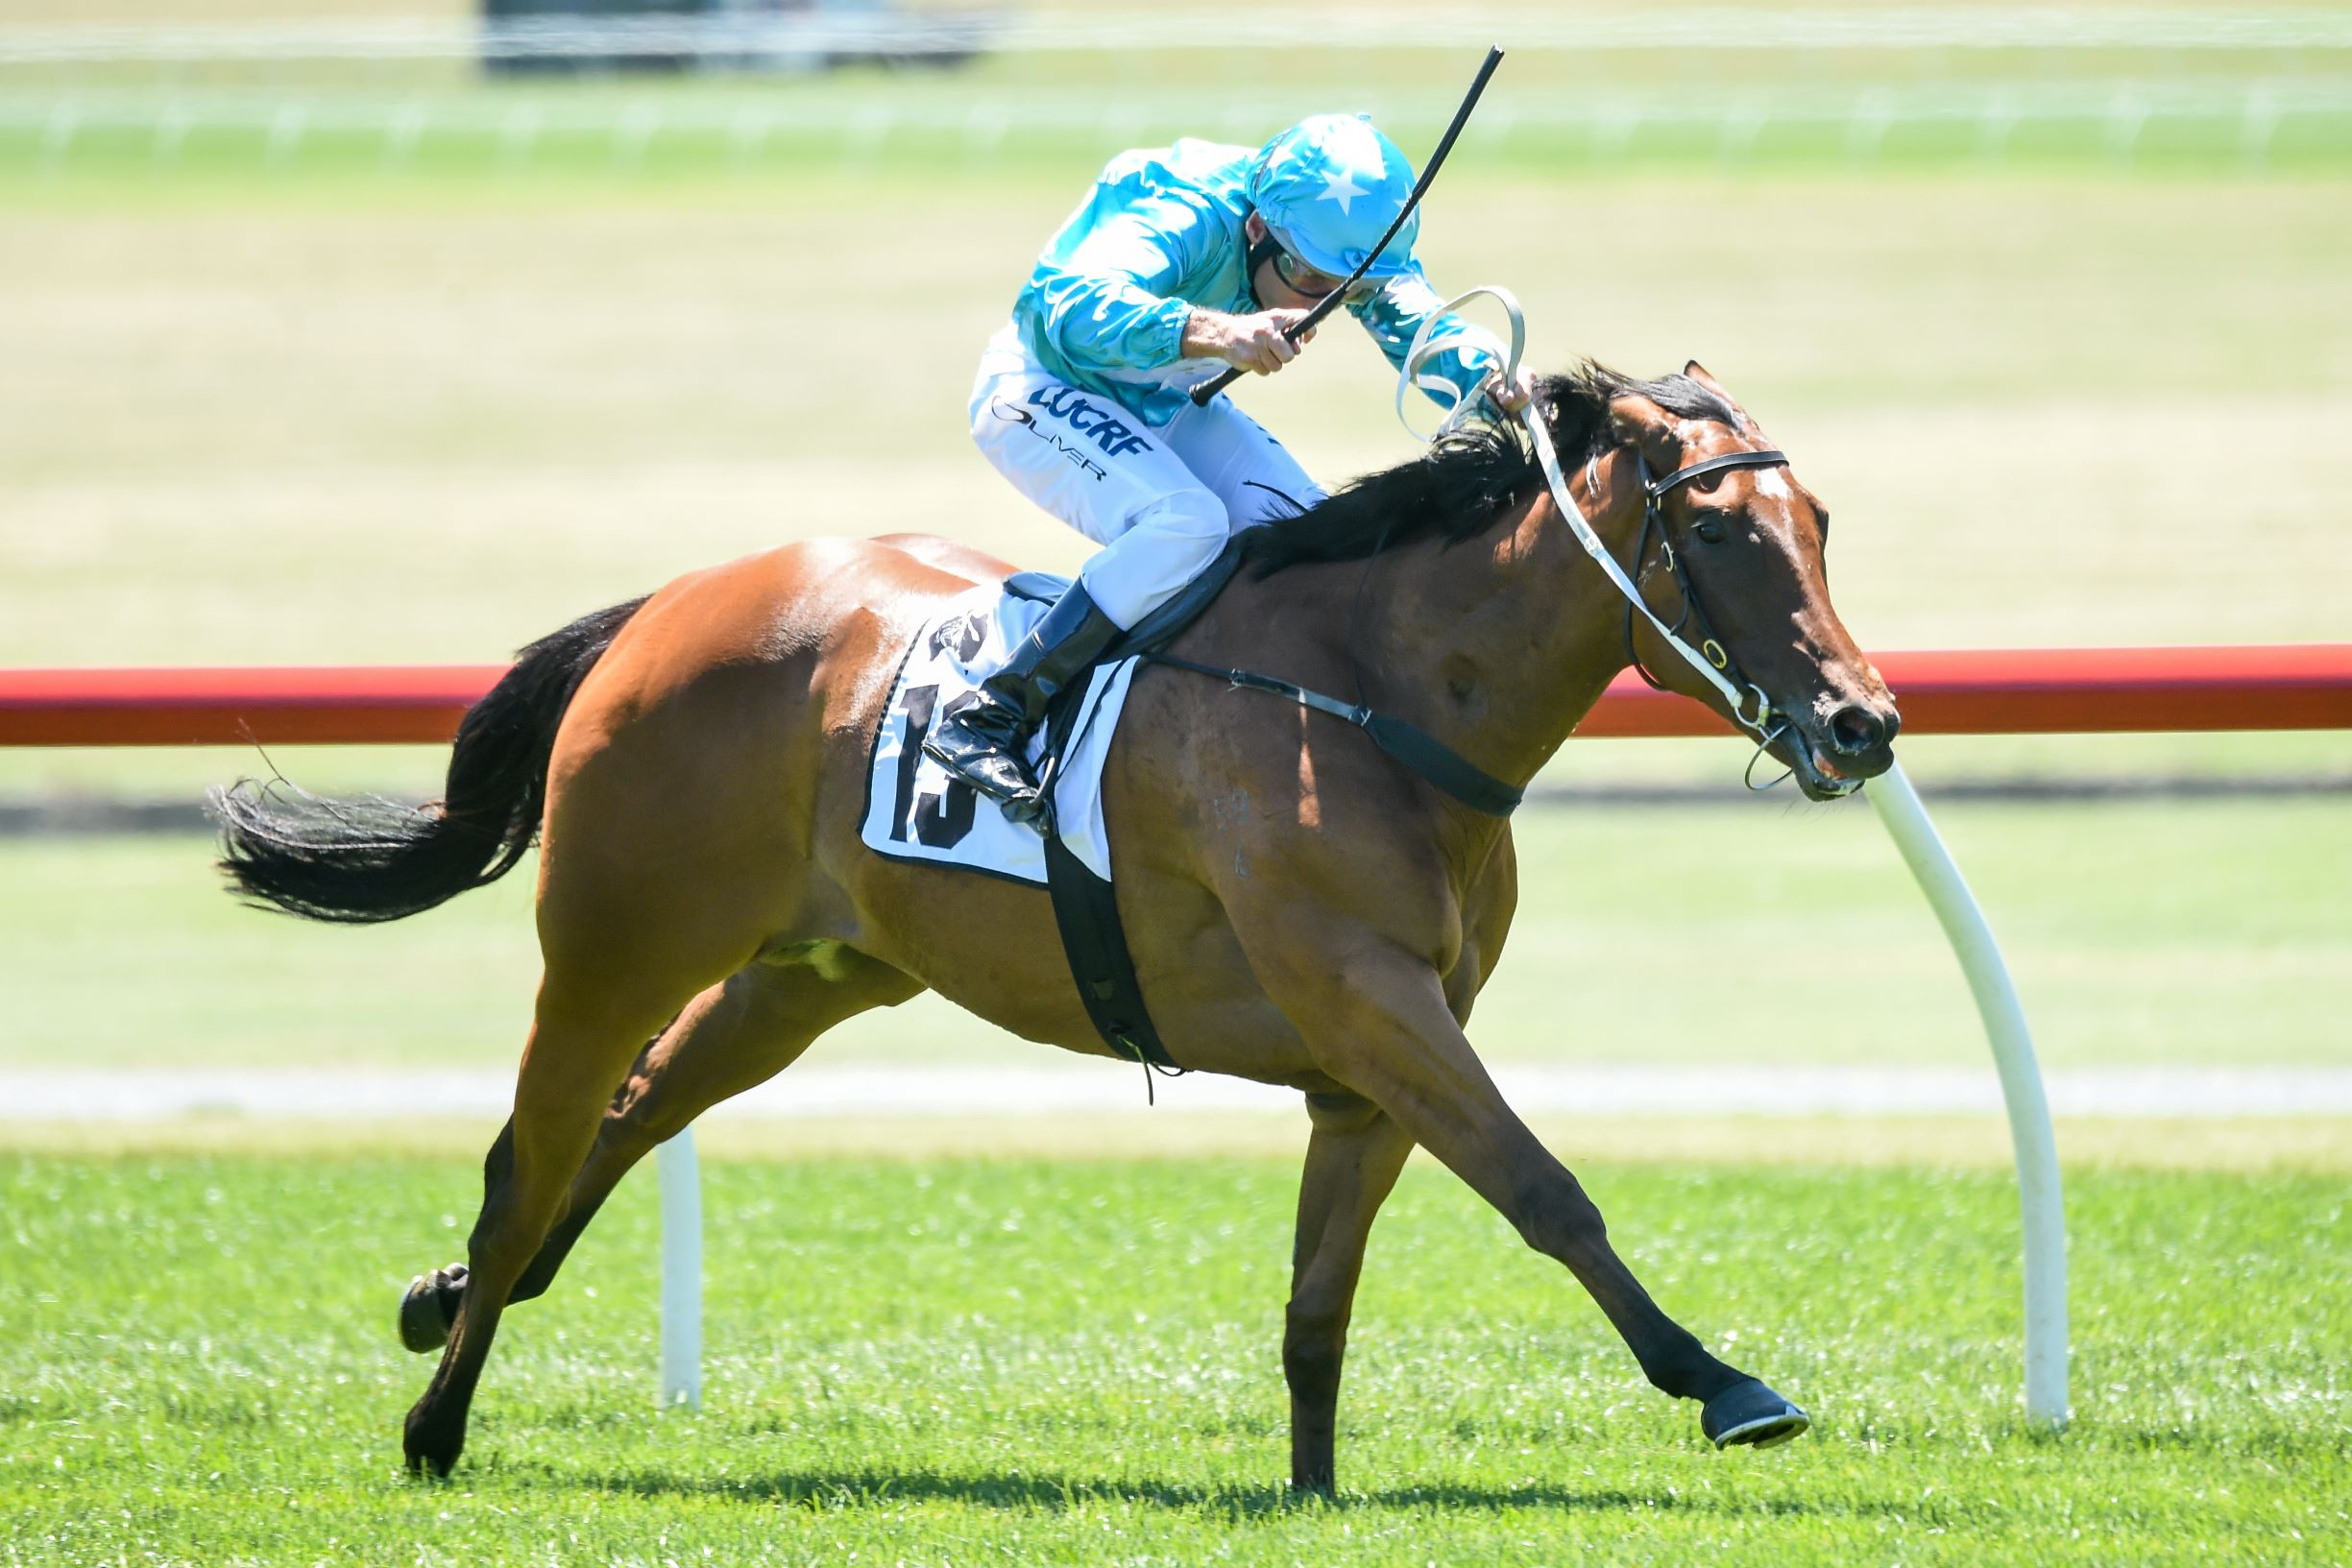 Steal My Kisses storms home to win the Listed Thoroughbred Club Merson Cooper Stakes